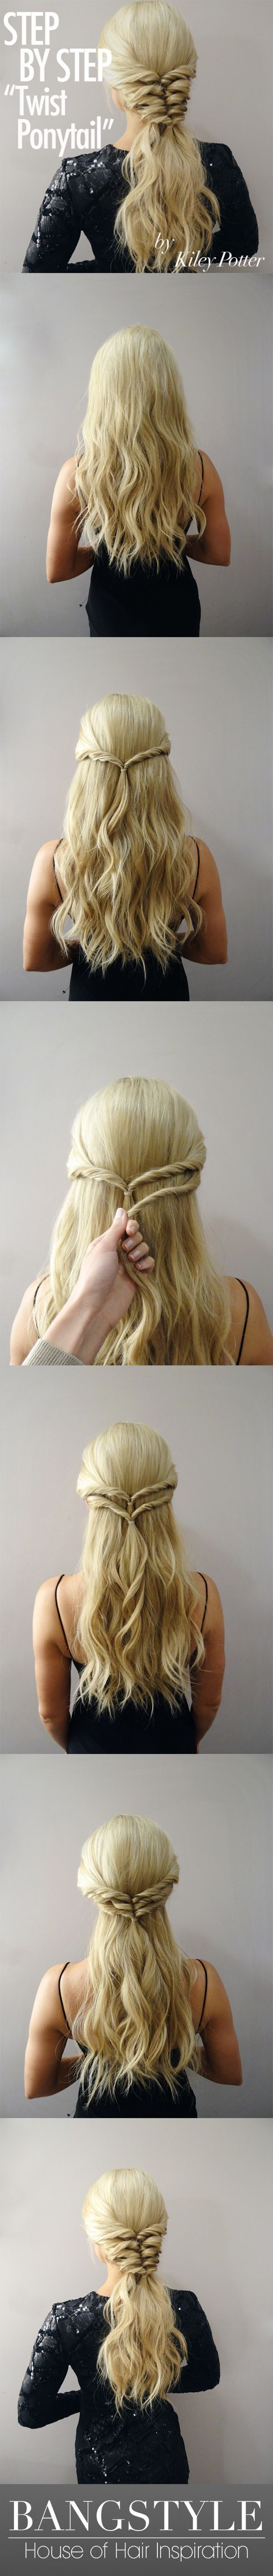 Can't decide between a pony tail and a braid? Bring both together in perfection